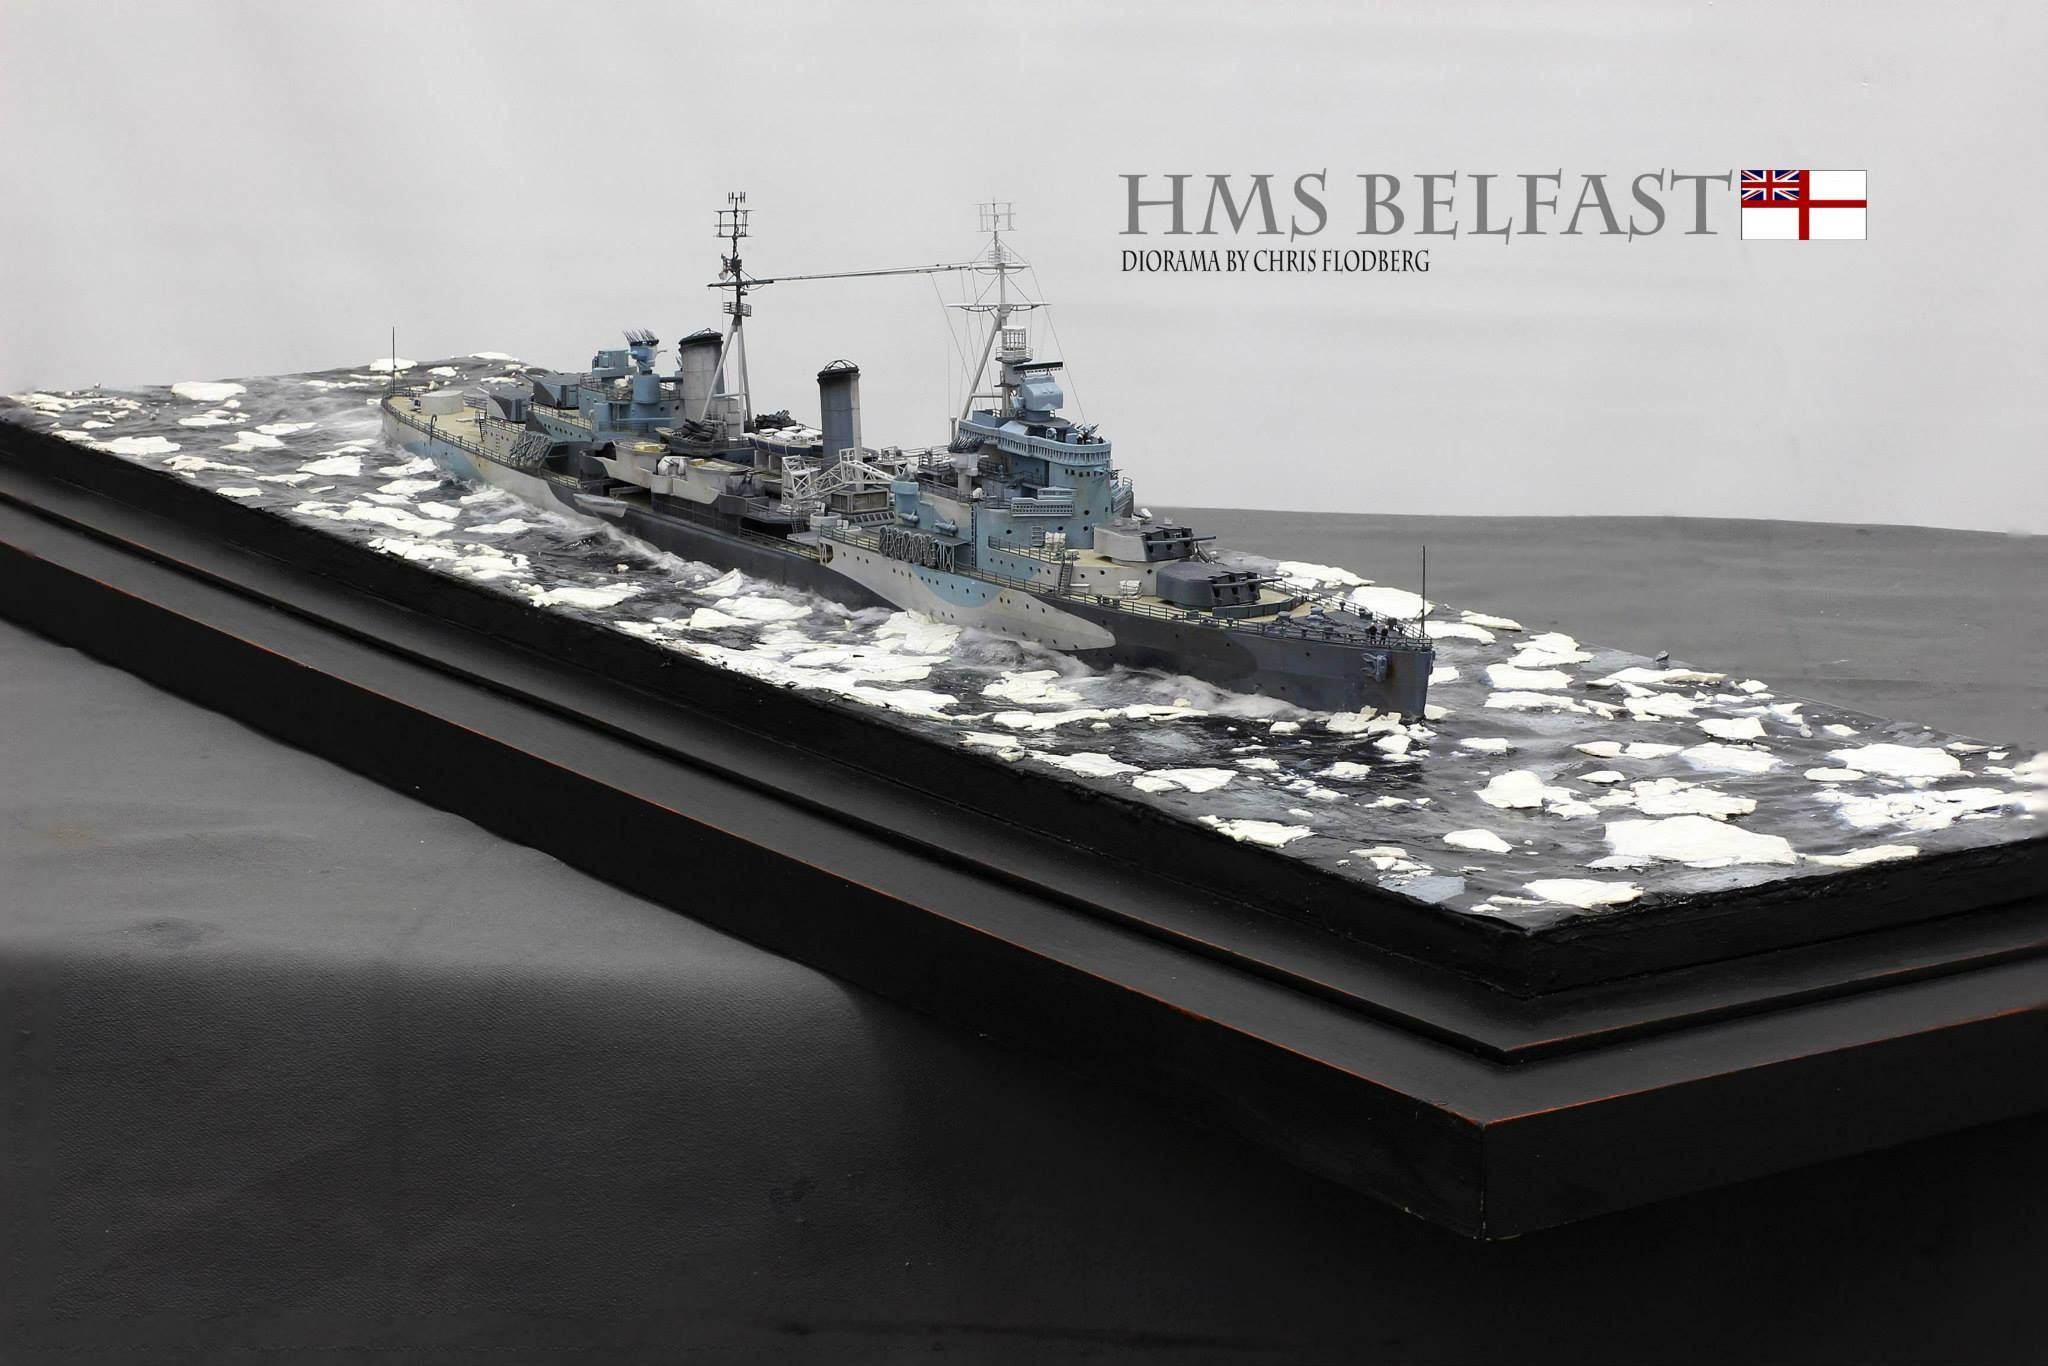 Aircraft carrier models large scale - Hms Belfast 1 350 Chris Flodberg Diorama Ideasmodel Shipsaircraft Carrierscale